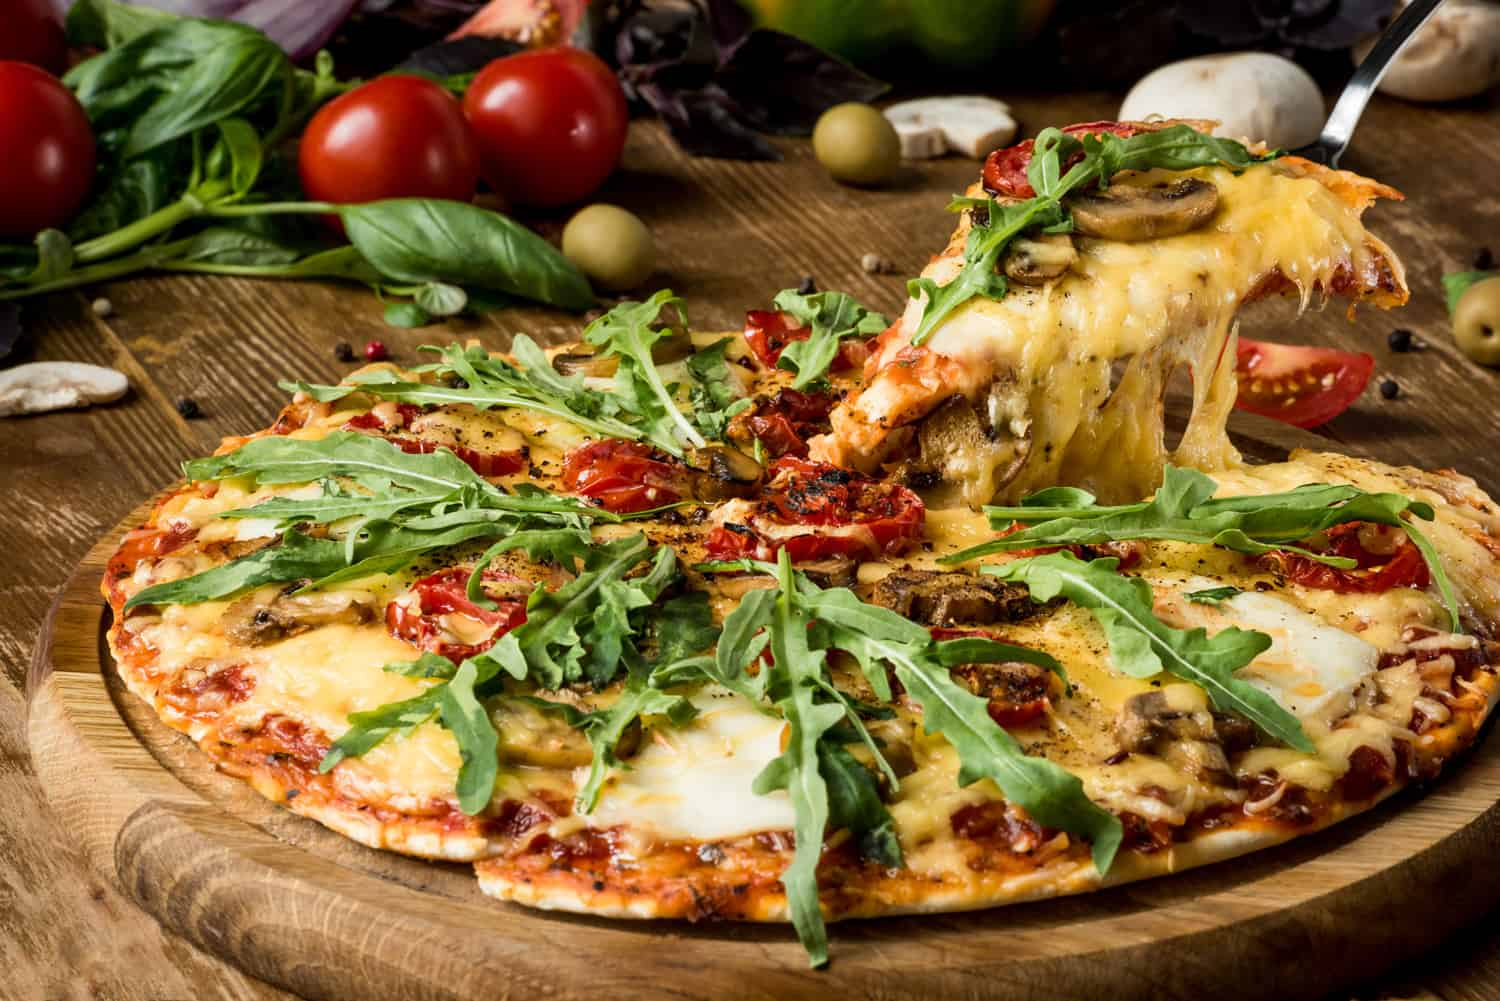 Italian pizza cooked from a convection oven